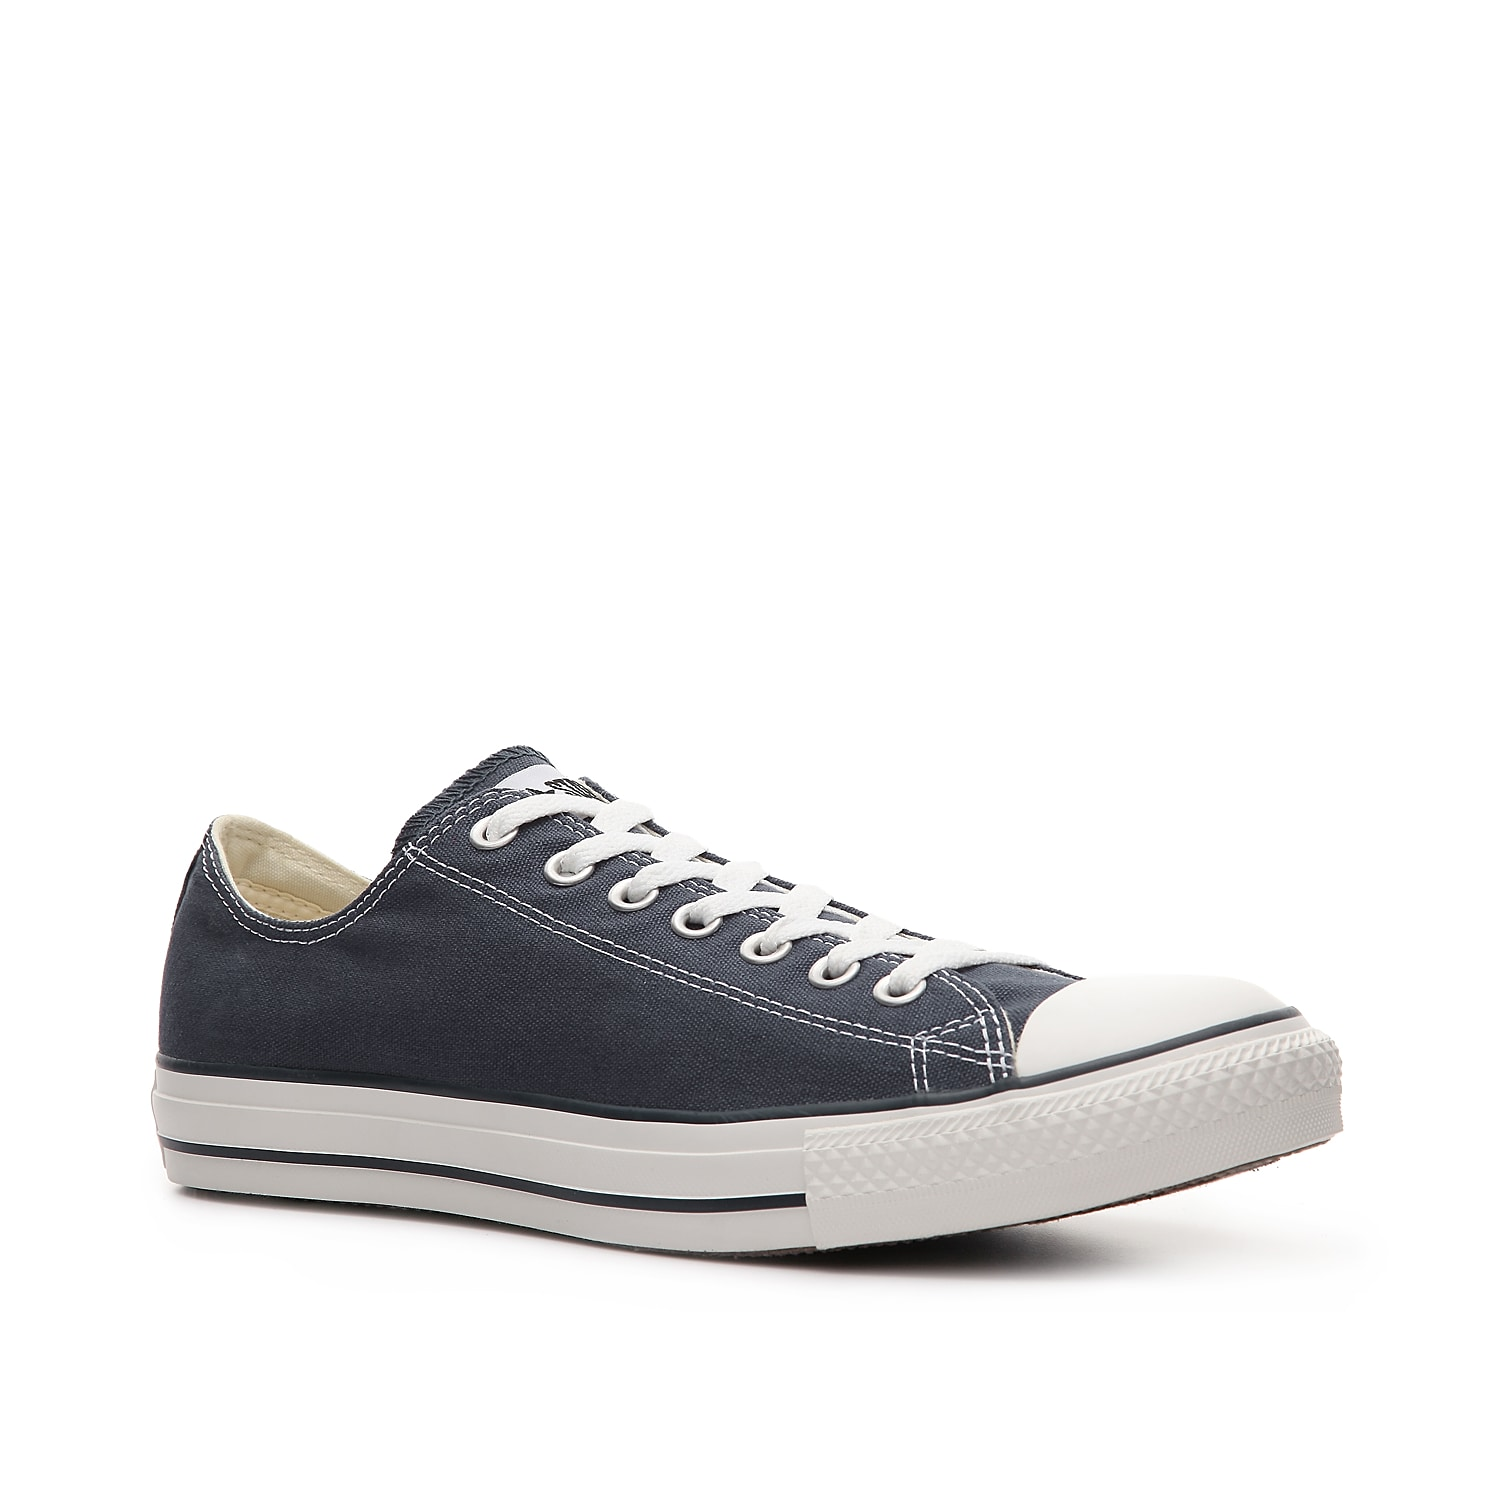 The nostalgic retro styling of the low-top classic navy blue Converse Chuck Taylor All Star sneaker will never go out of style. Incorporate the vintage shoe into your casual wardrobe and make it your own, footwear for men in timeless navy.